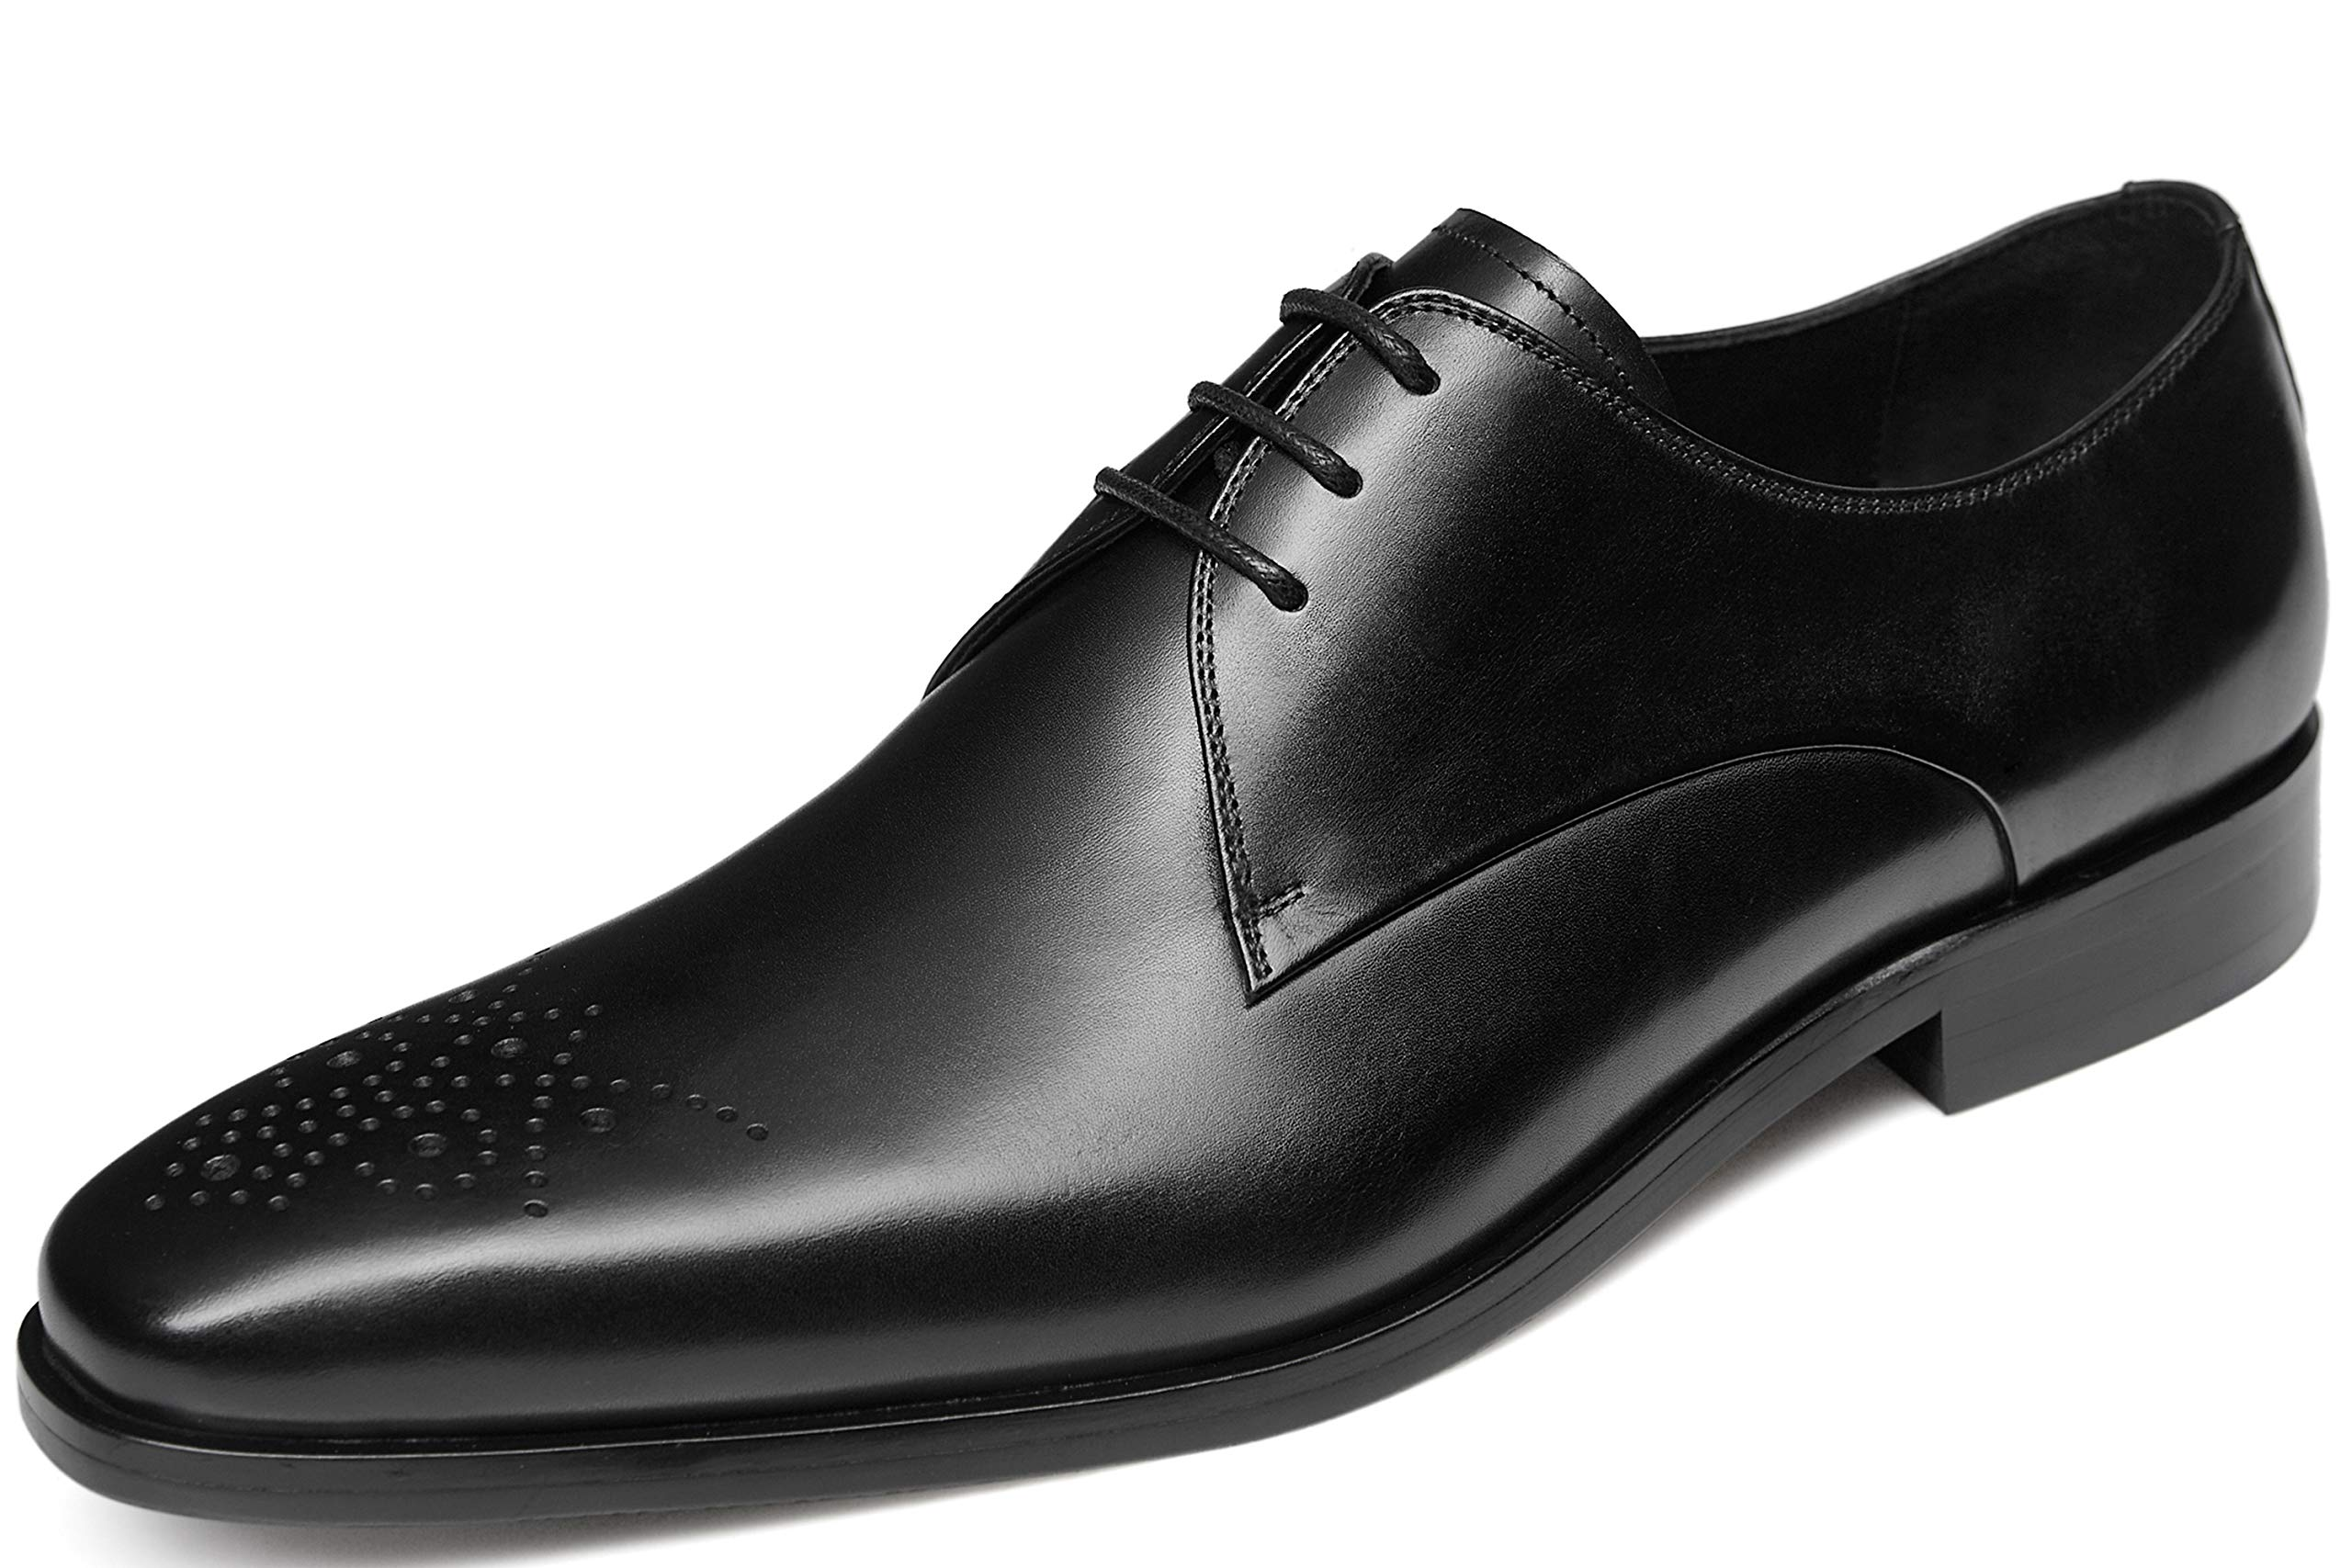 GIFENNSE Men's Dress Shoes Oxfords Leather Shoes(8.5US/Black